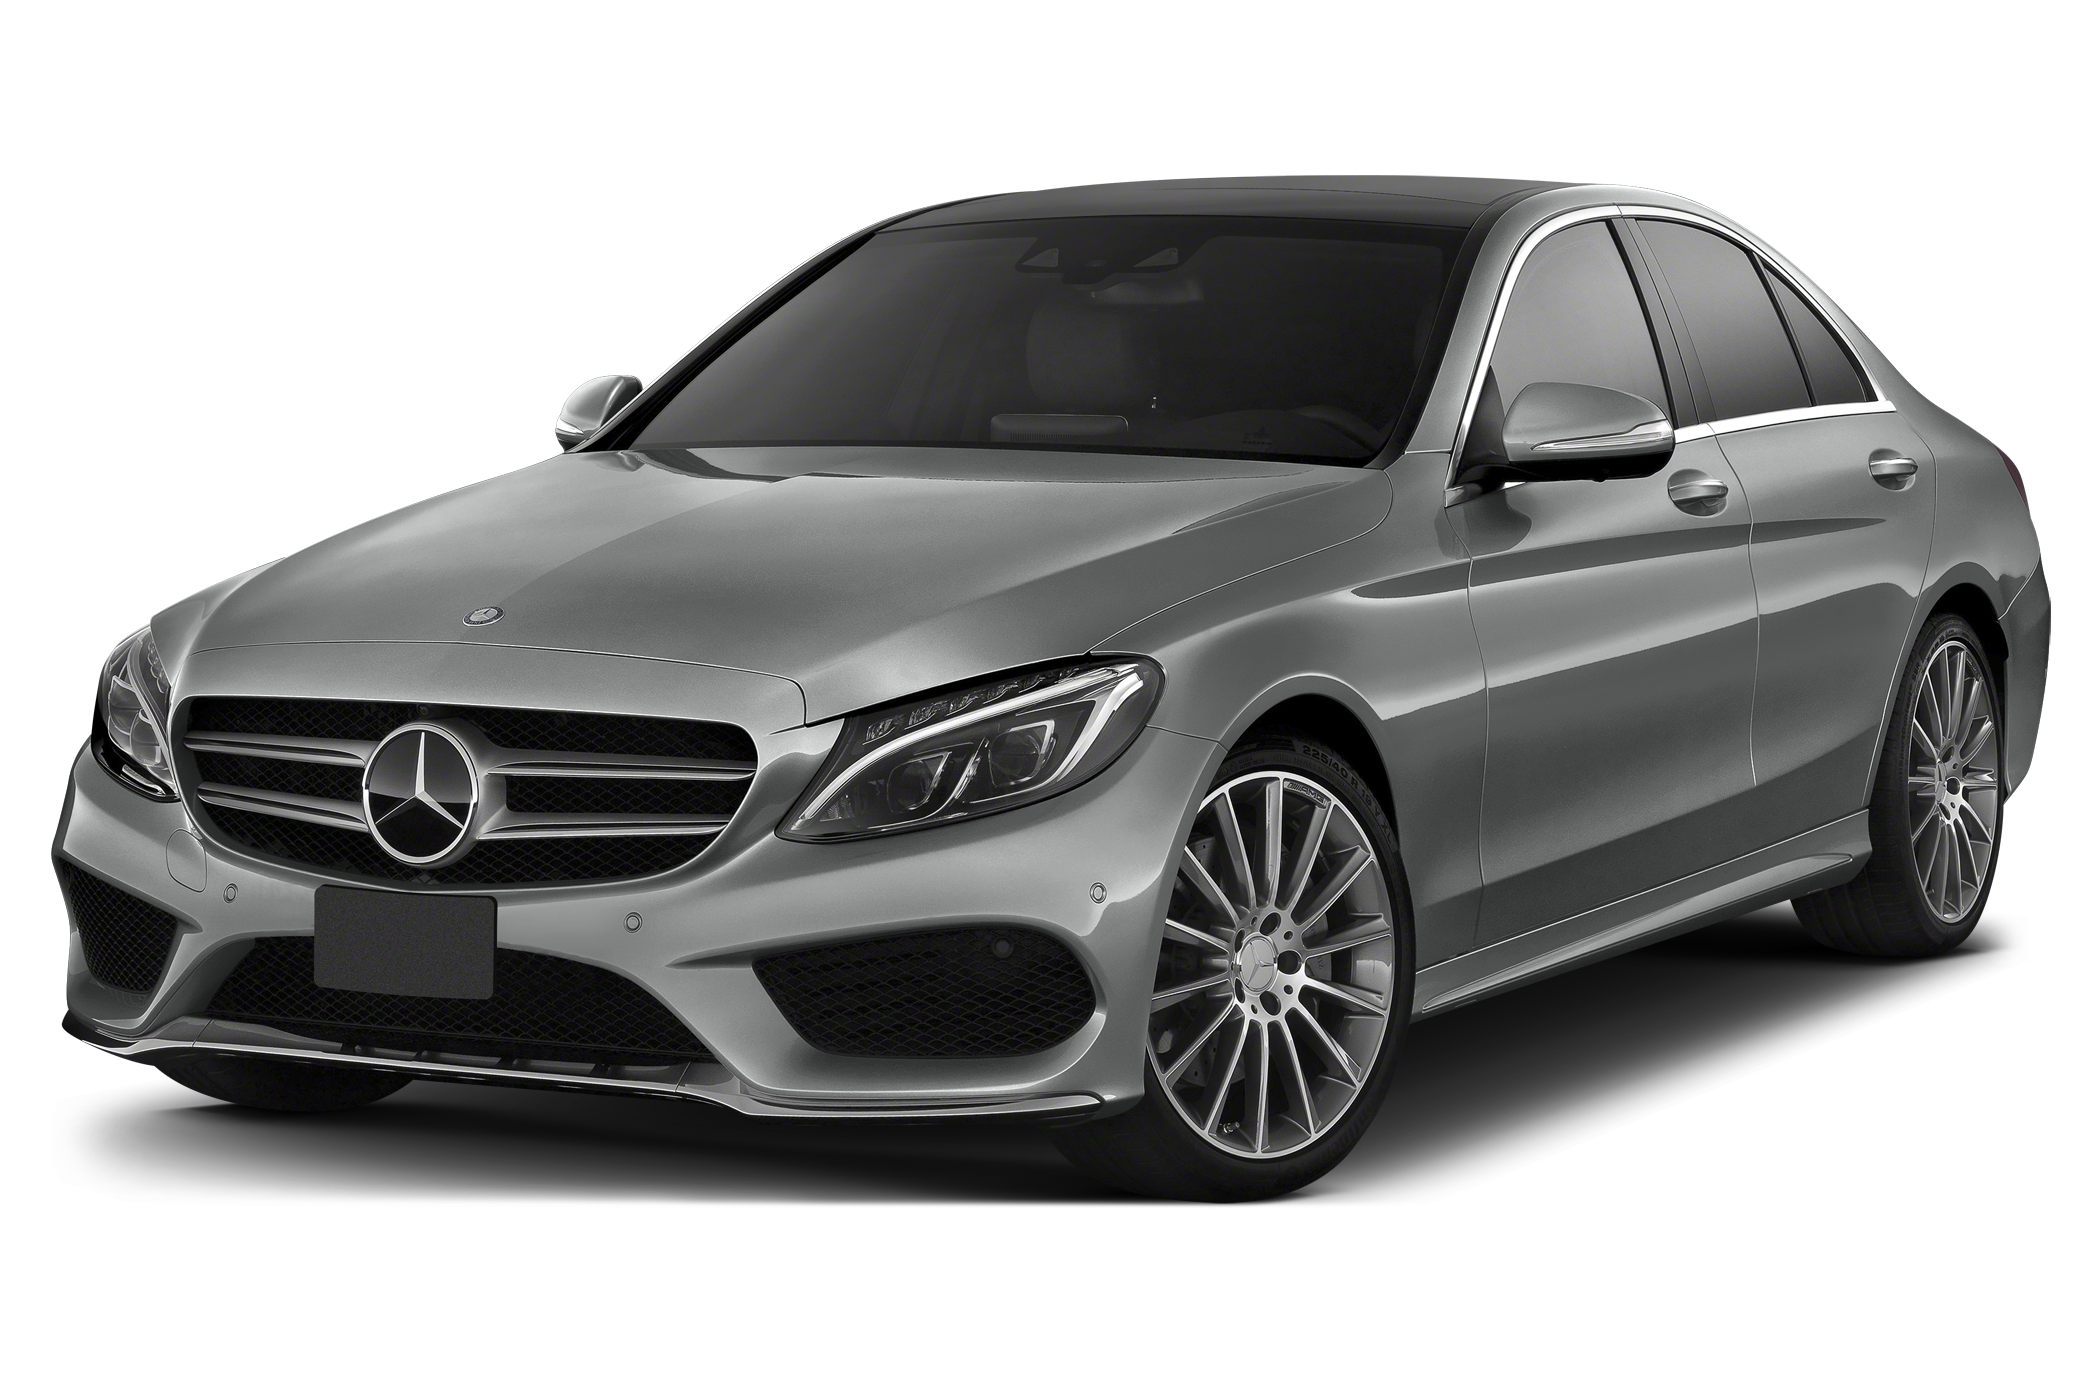 2016 mercedes c class coupe offers s class style on a budget. Black Bedroom Furniture Sets. Home Design Ideas